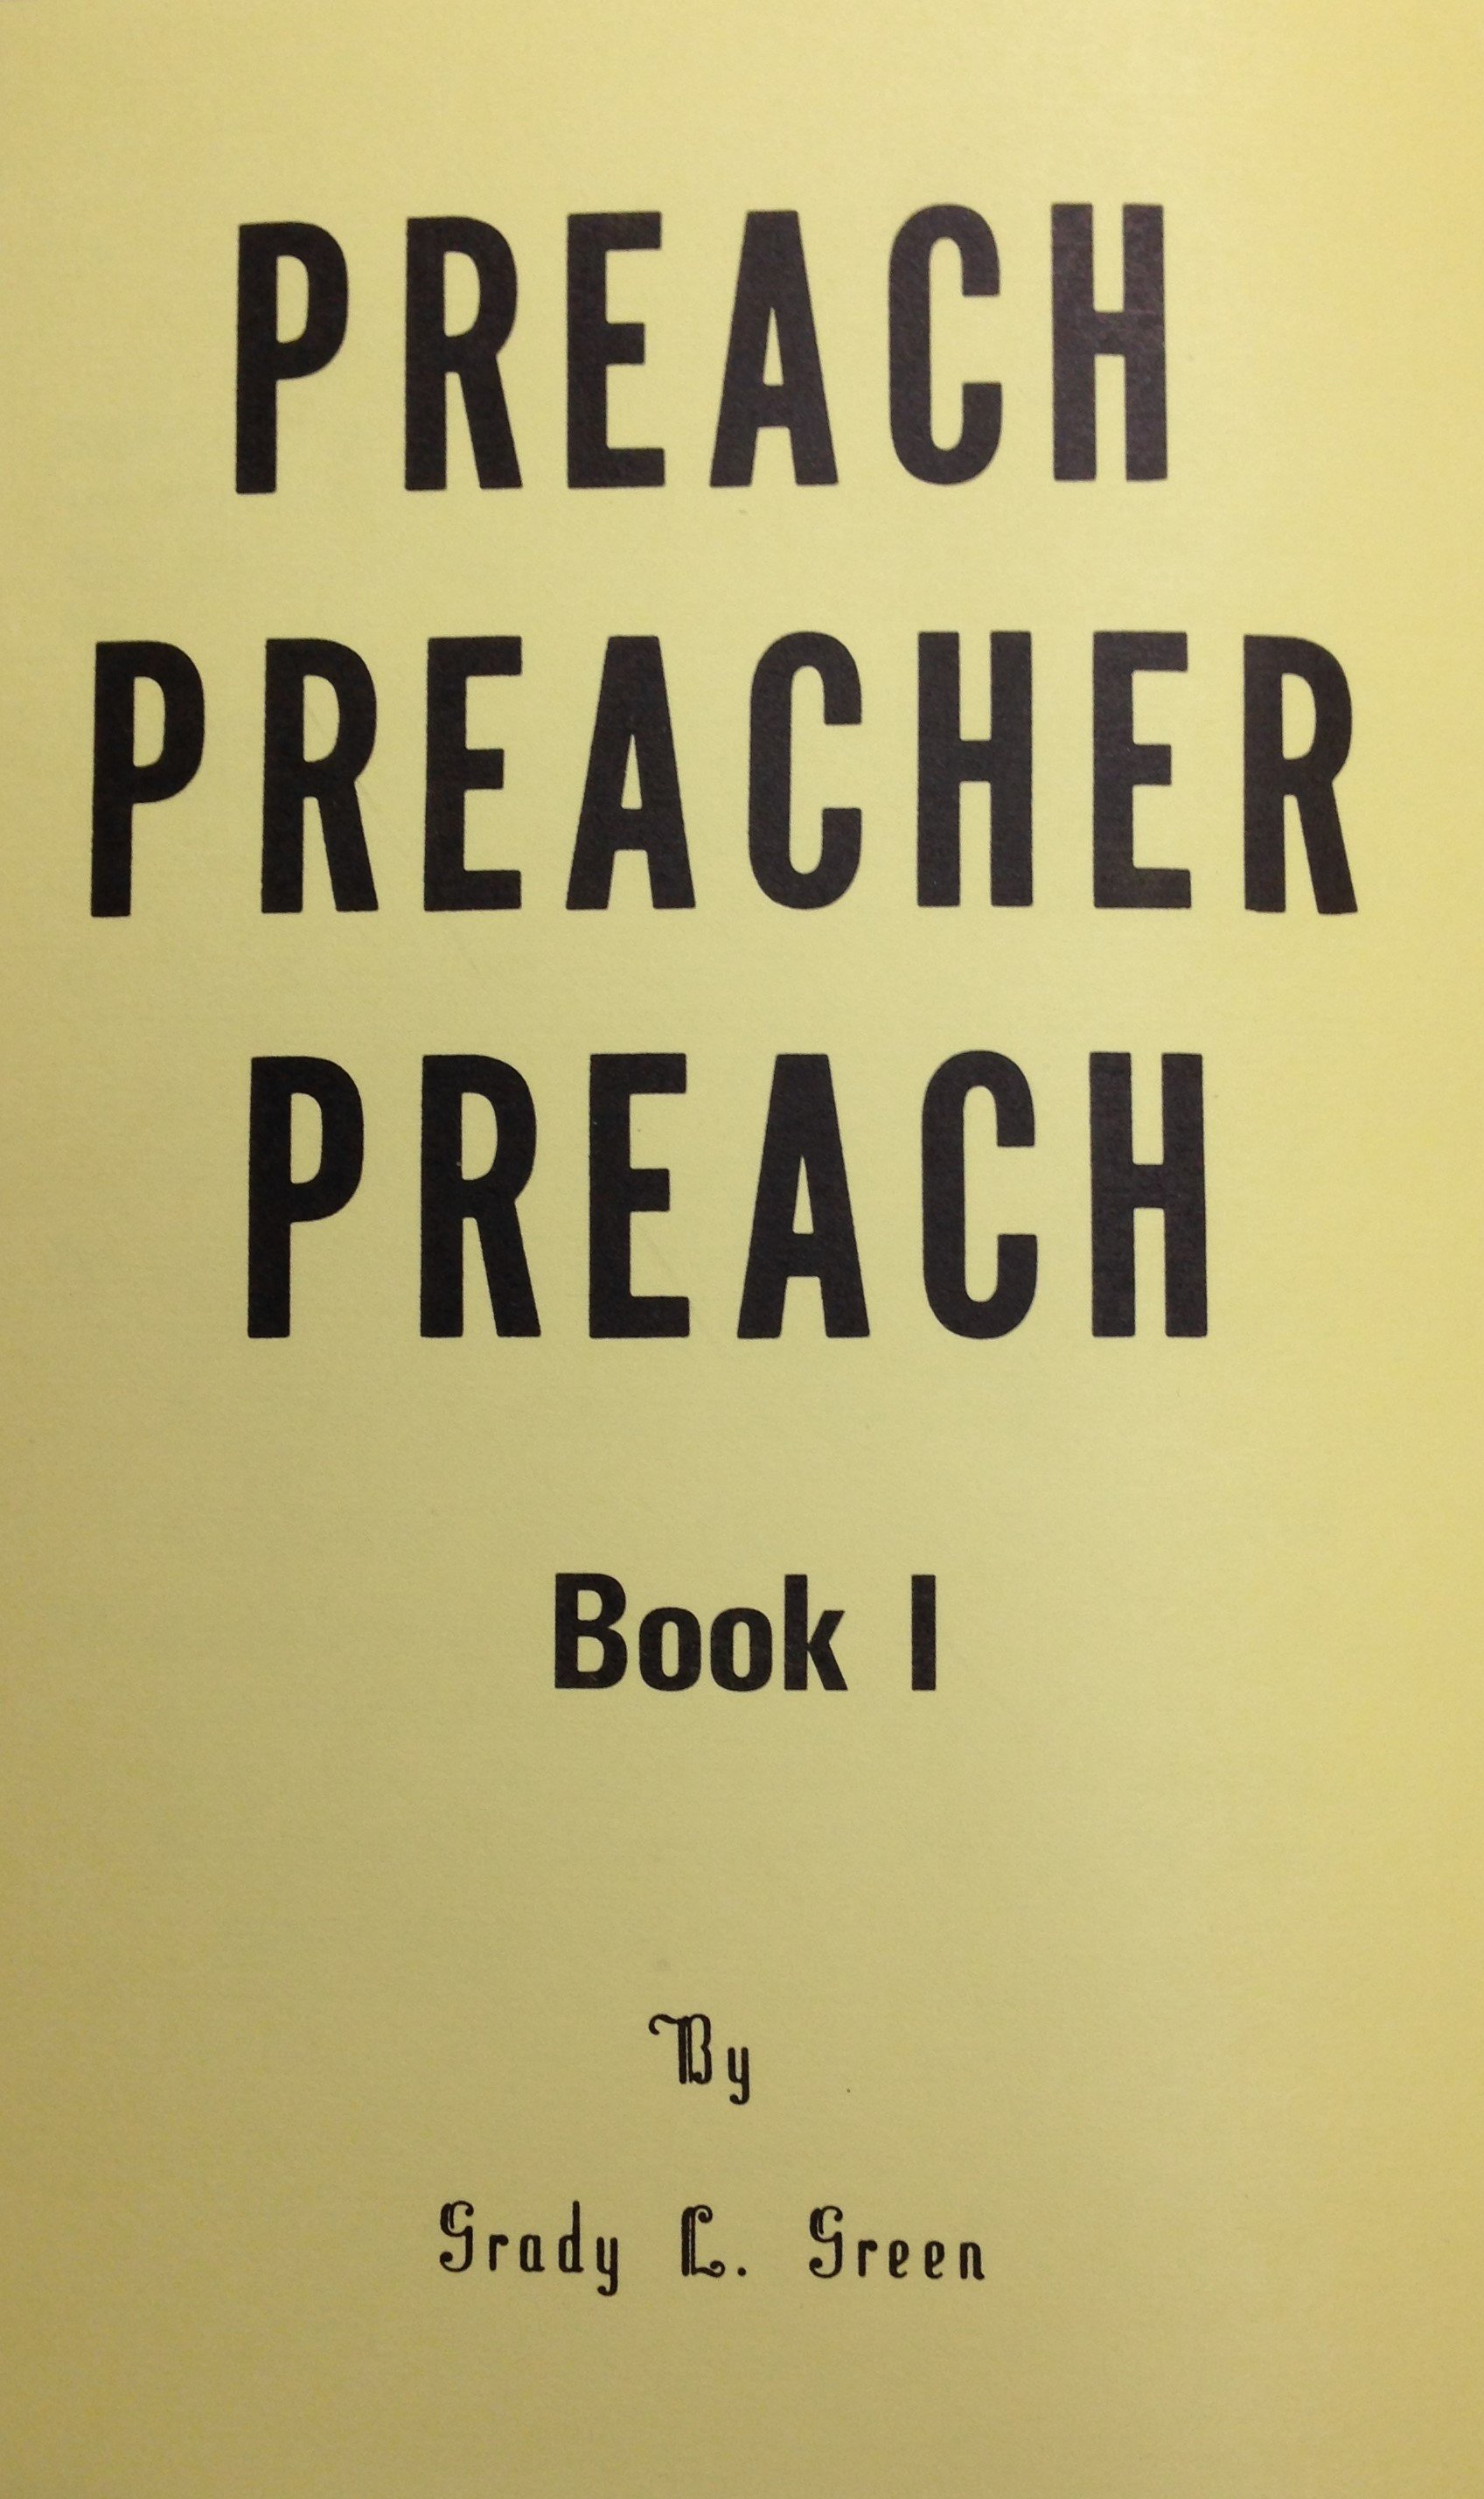 Preach Preacher Preach by Grady Green 00075